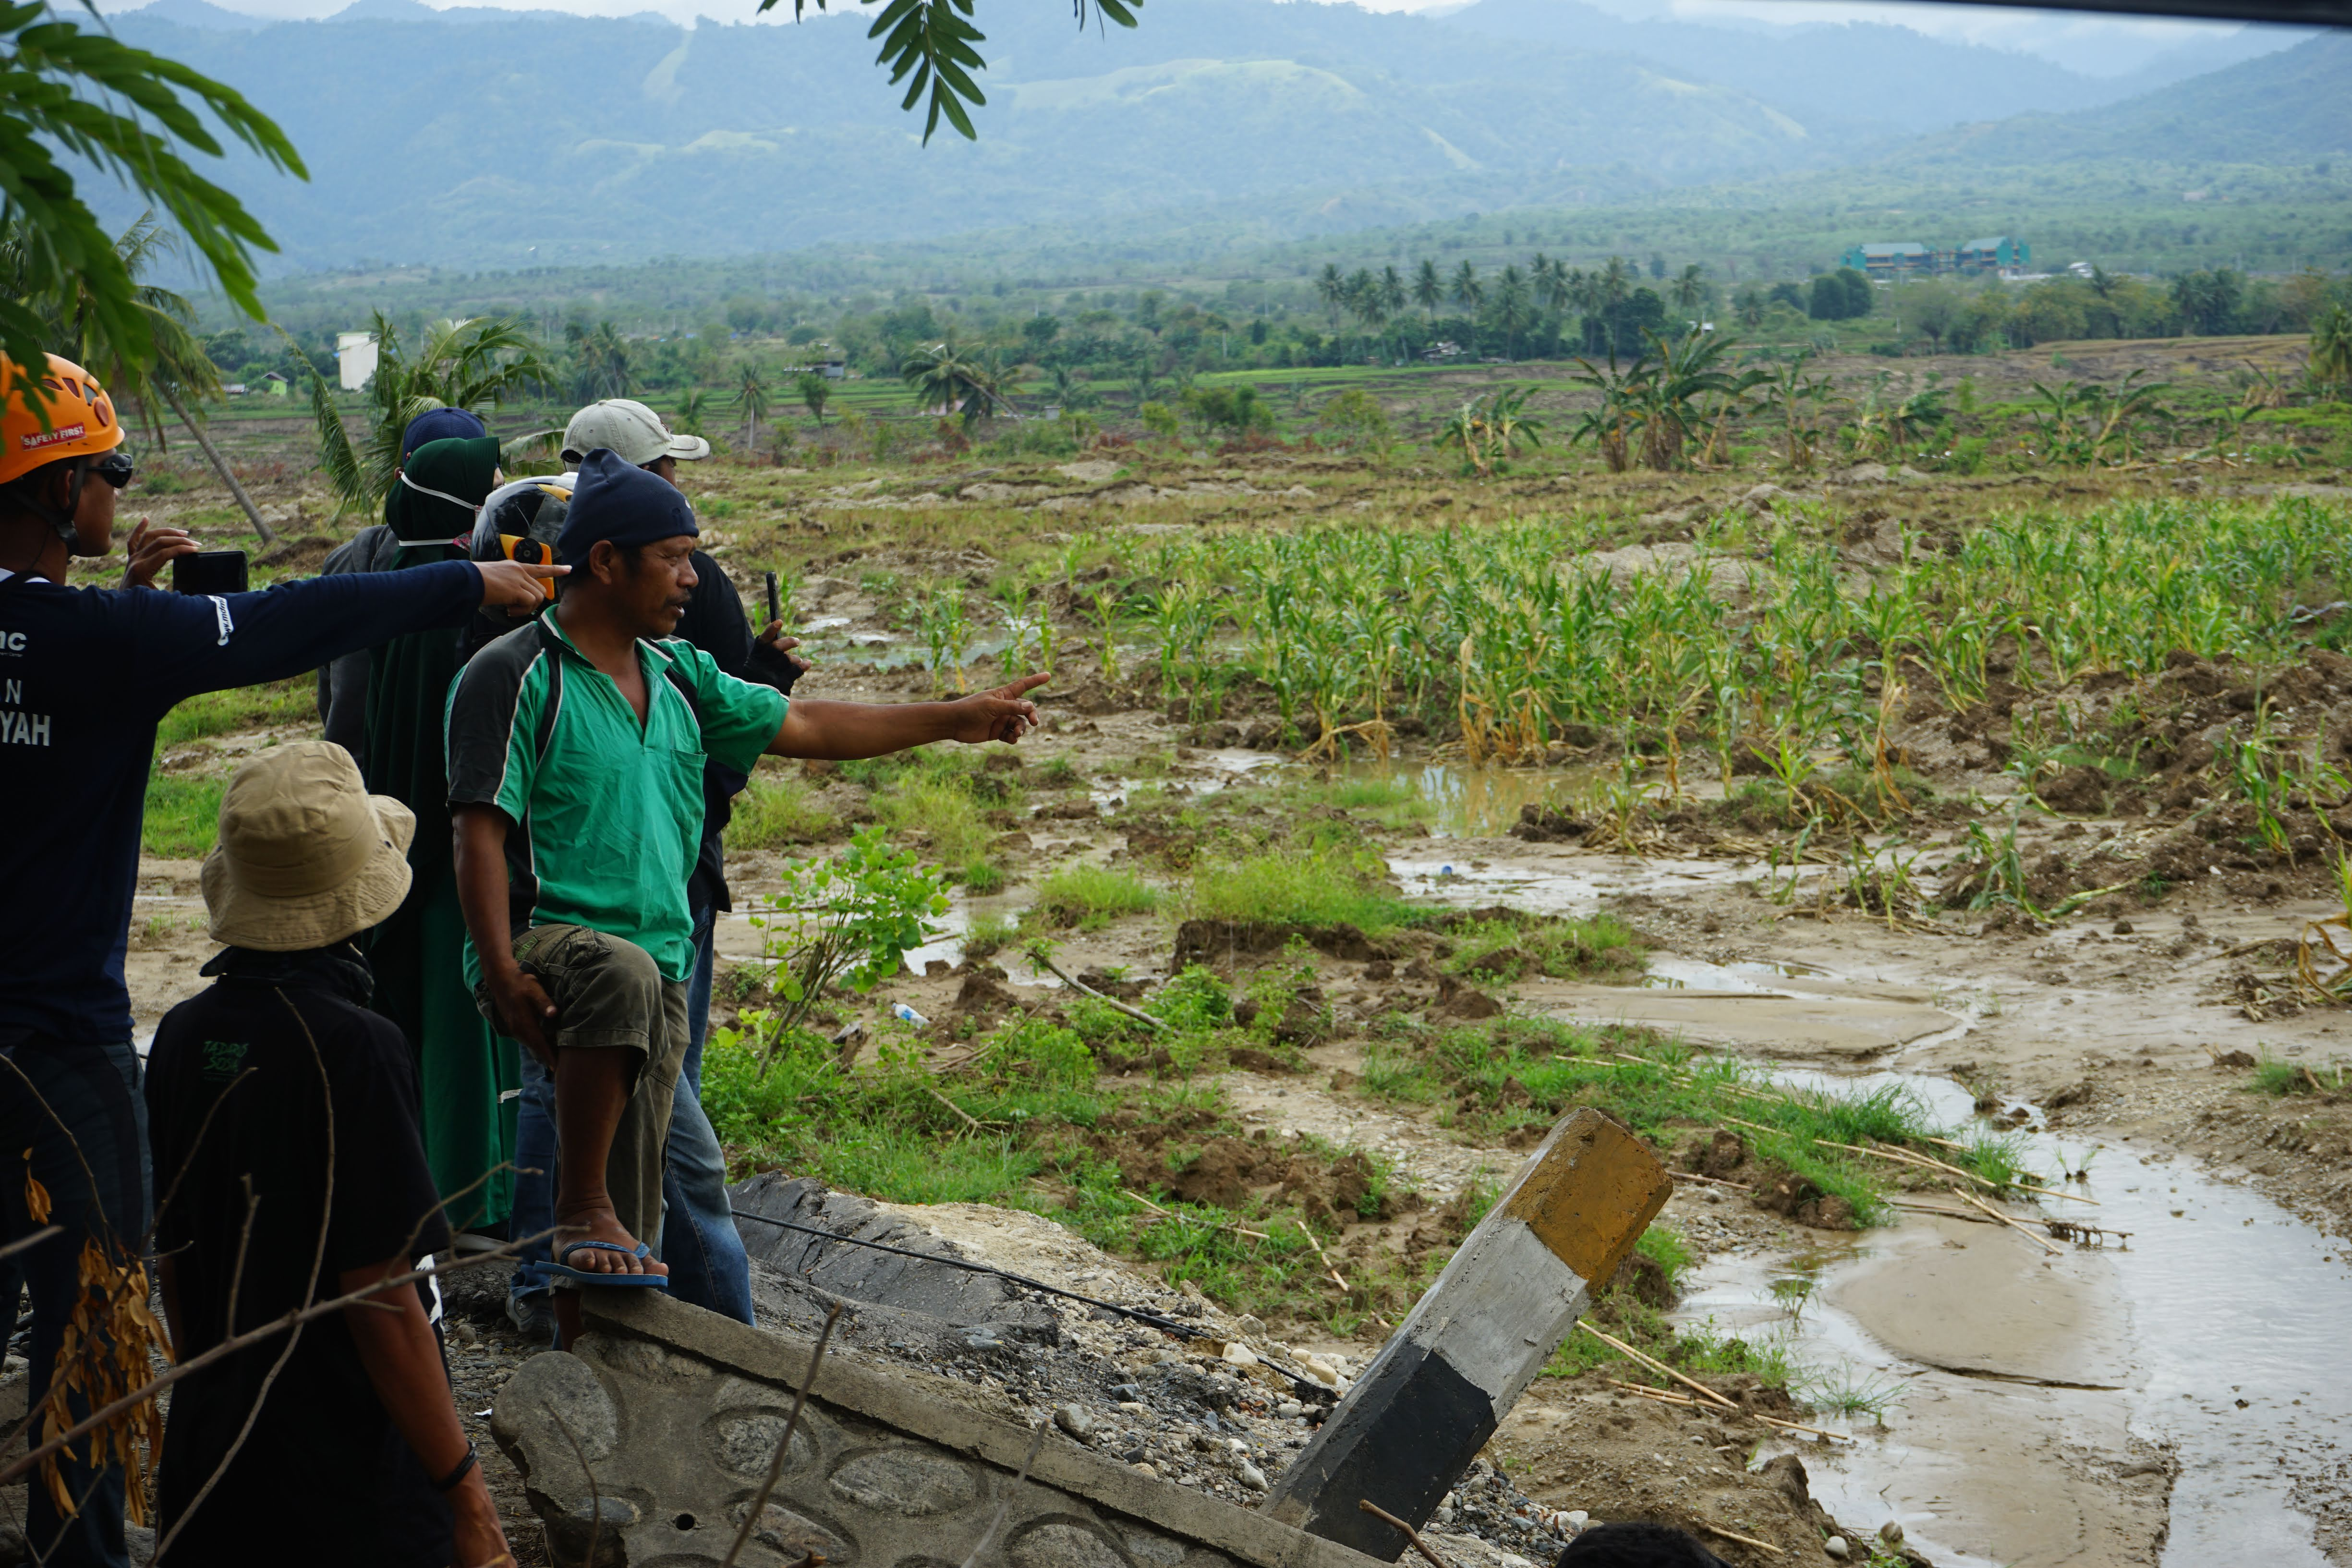 Devastation in Sulawesi, Indonesia, is pictured on October 12, 2018. Responding in the area are members of the  Muhammadiyah Disaster Management Center, which has been conducting search and rescue in the days since the earthquake and tsunami struck, as well as medical outreach, shelter care and food distribution. Direct Relief is supporting MDMC with funding to continue their critical work in the region as recovery begins. (Photo courtesy of Gordon Willcock)